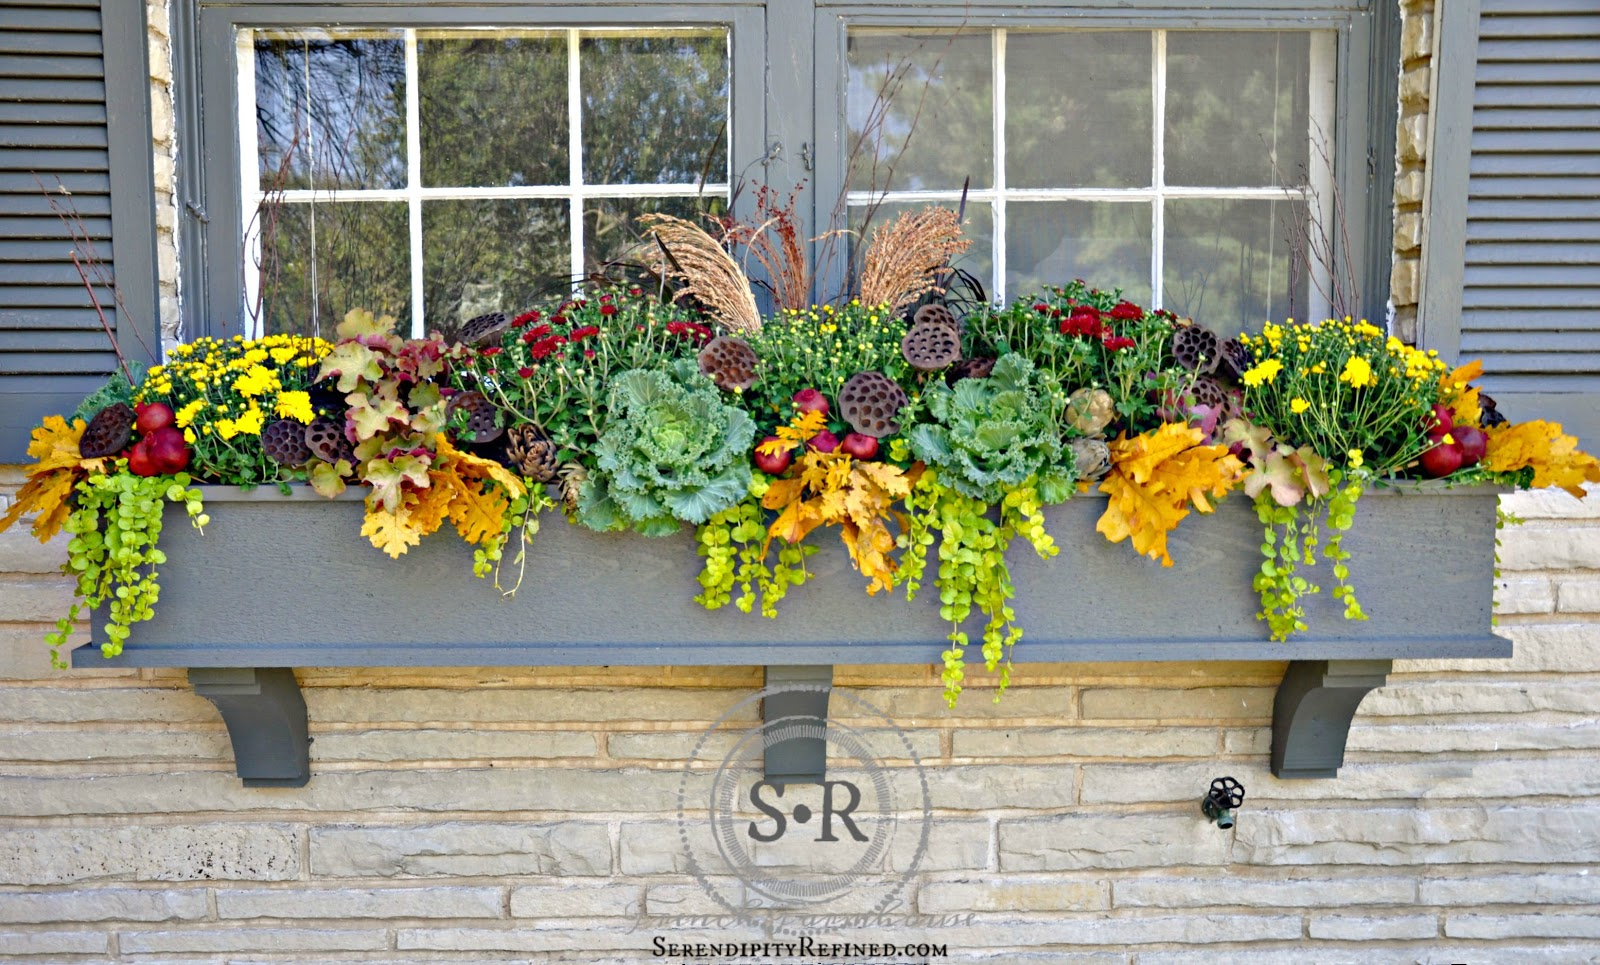 serendipity refined blog fall window box planter. Black Bedroom Furniture Sets. Home Design Ideas